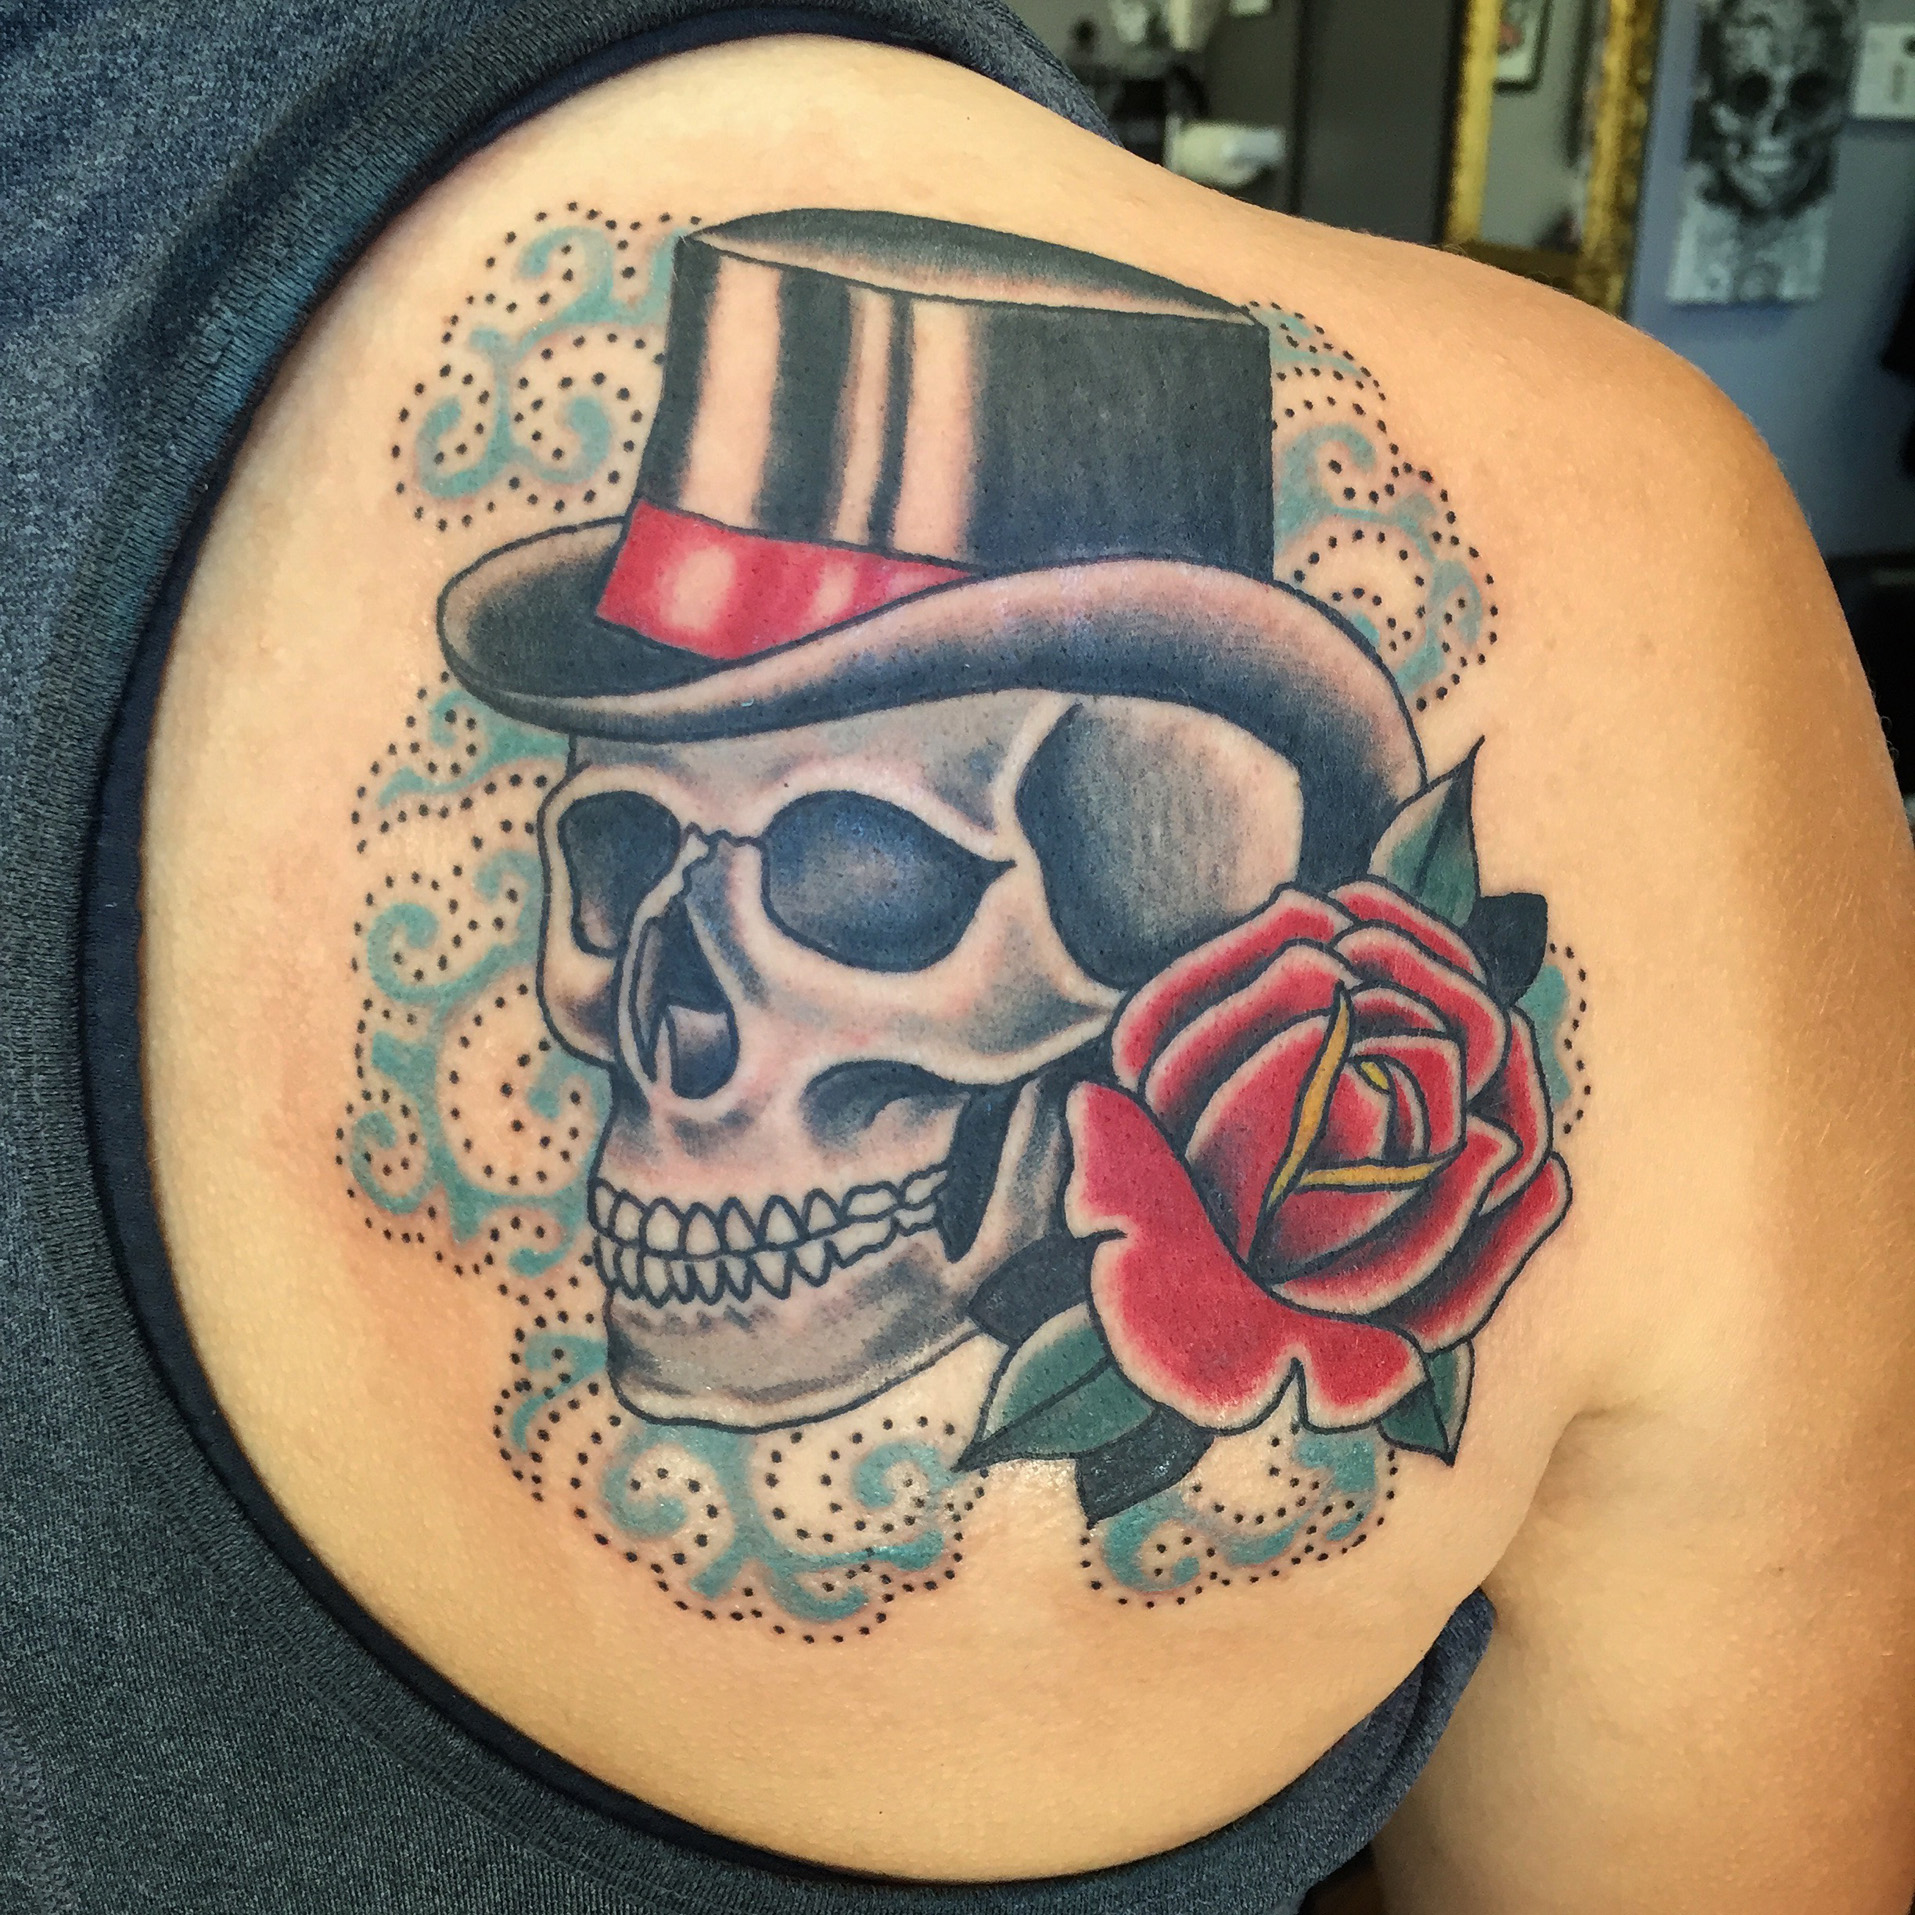 Image Gallery – The World Famous Aces Tattoo Ideas And Designs